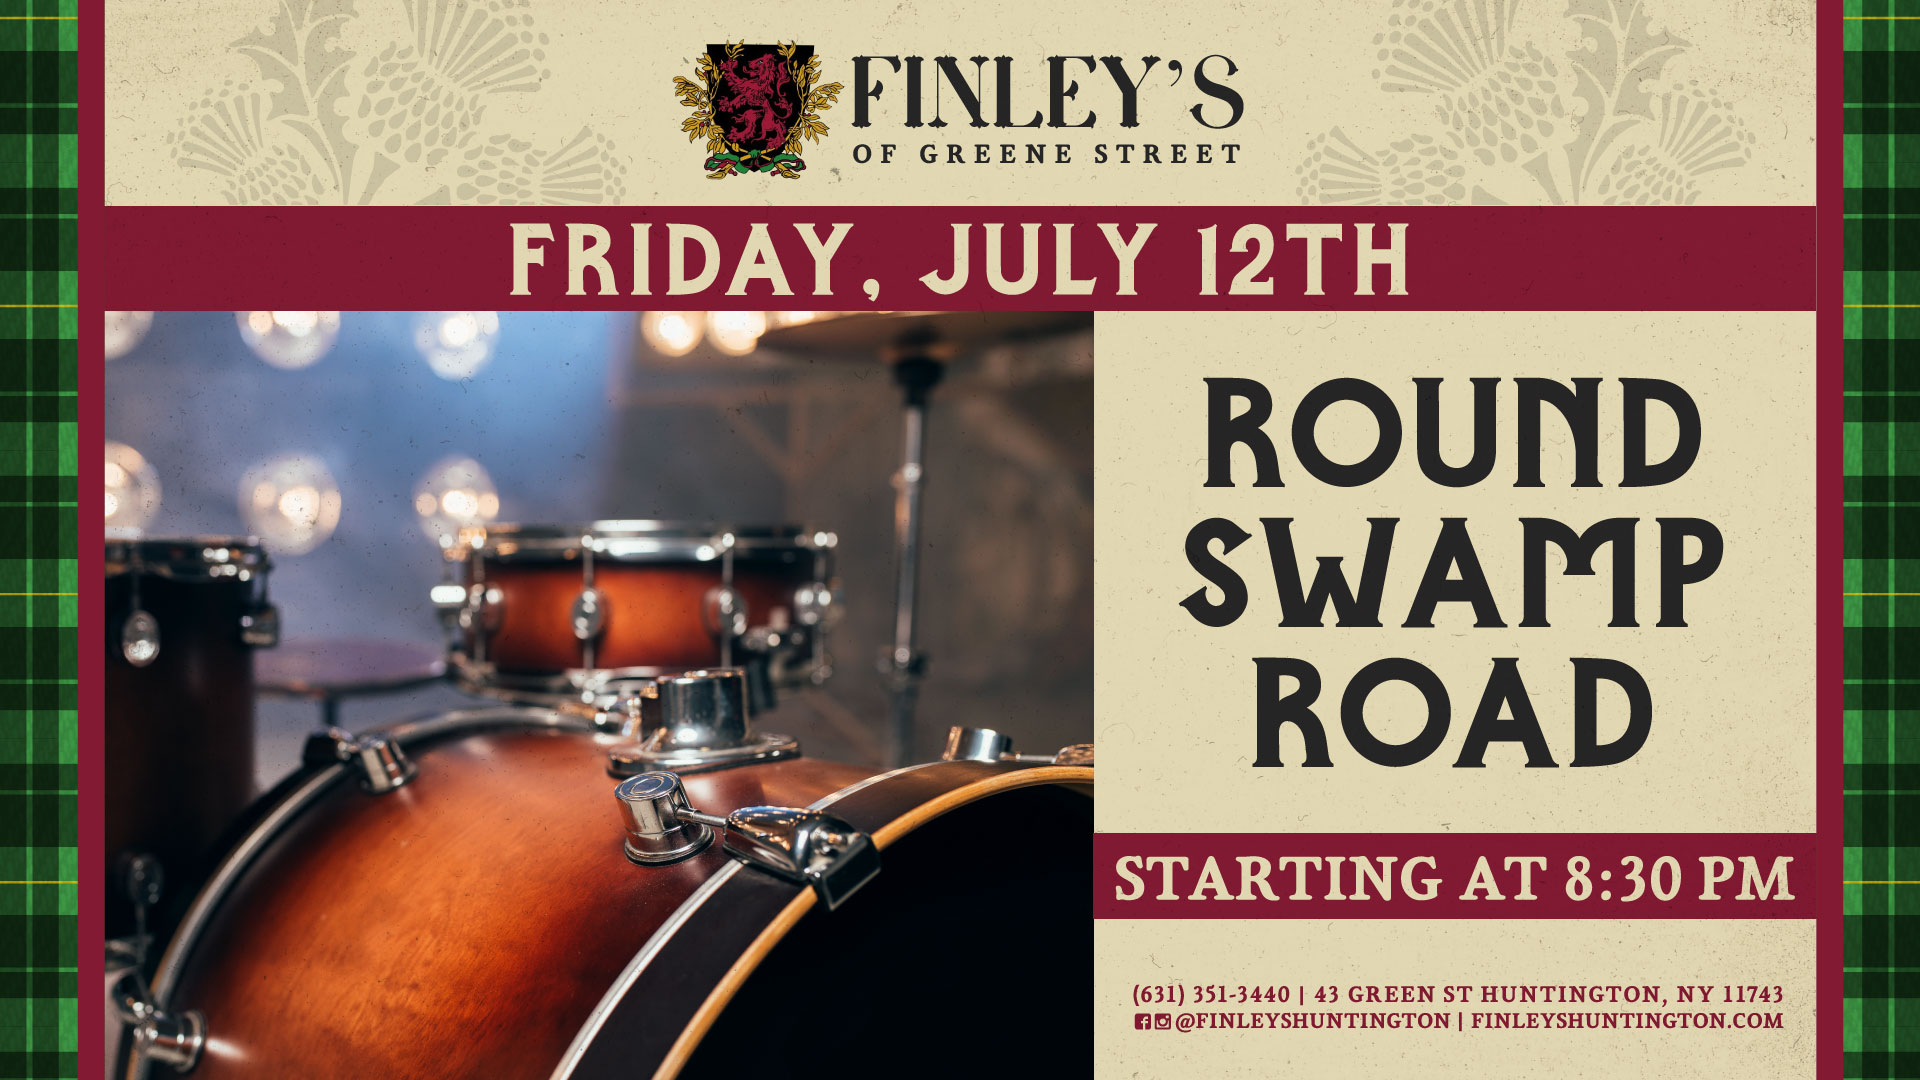 Flyer for live music with Round Swamp Road on July 12th at 8:30pm.